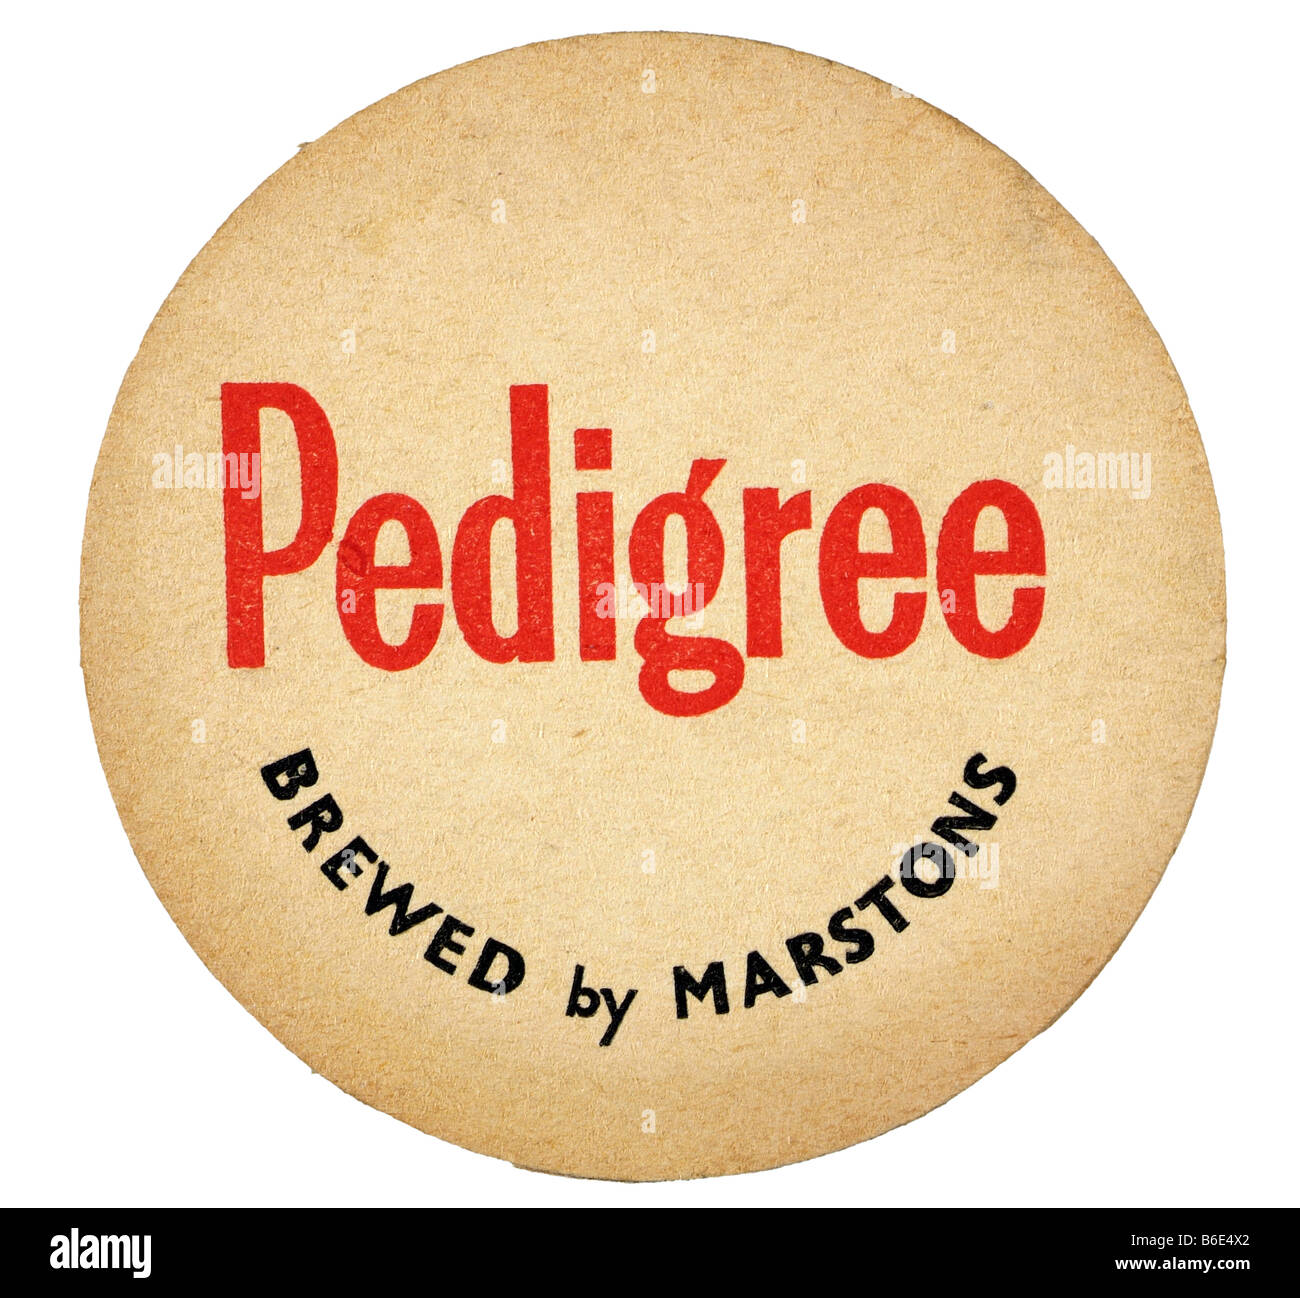 pedigree brewed by marstons - Stock Image